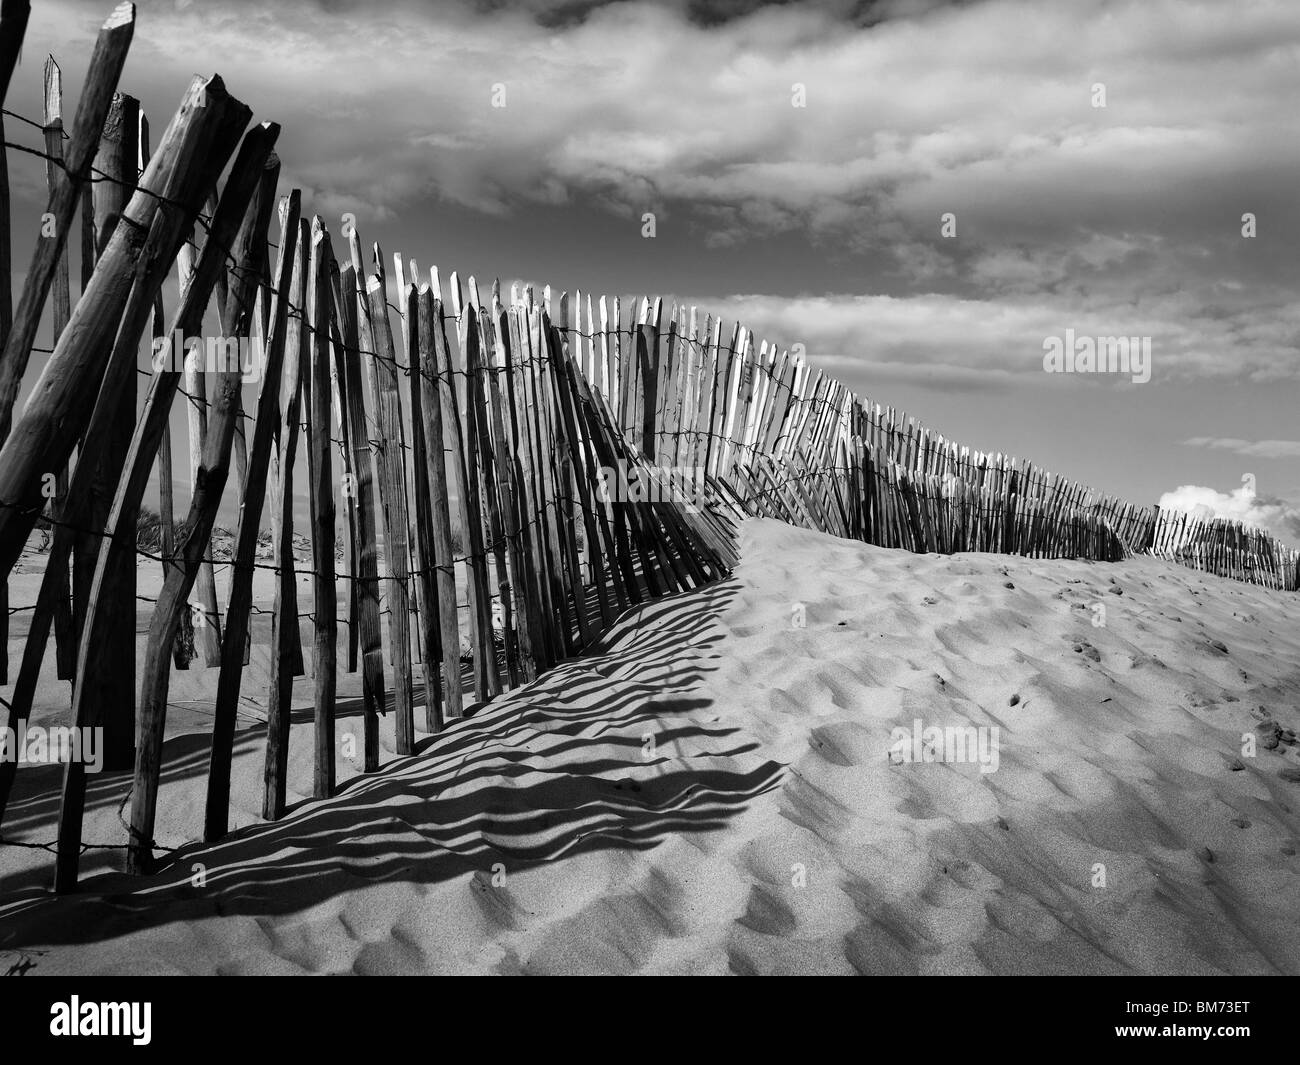 sand dunes at Formby Point Near Liverpool on the Merseyside coast, showing fence, footprints in the sand in black - Stock Image